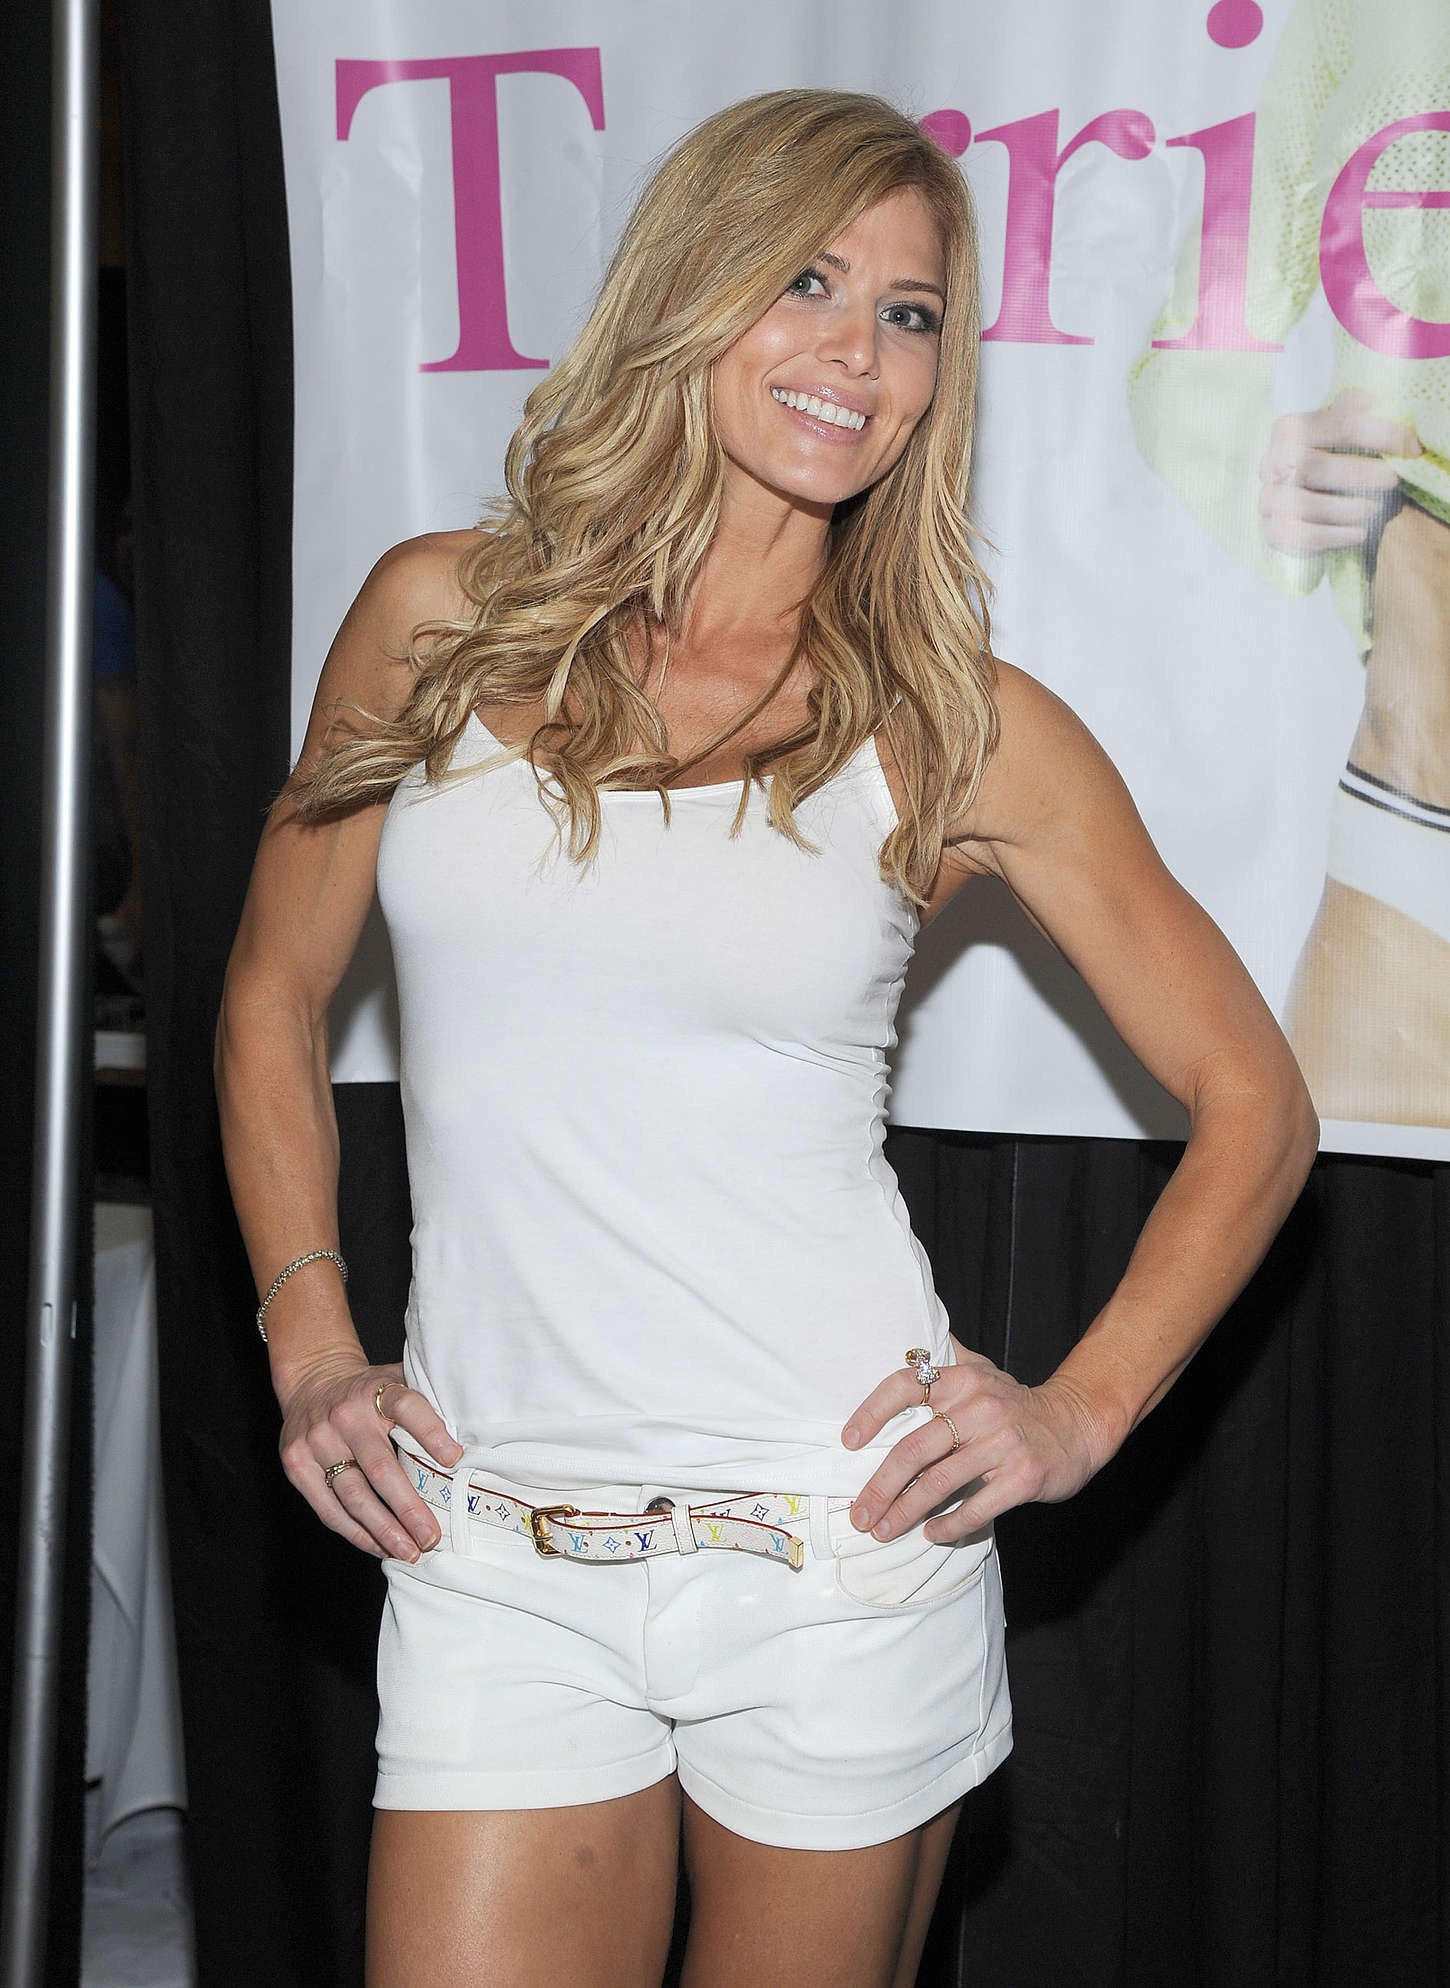 Torrie Wilson WrestleCon in San Jose